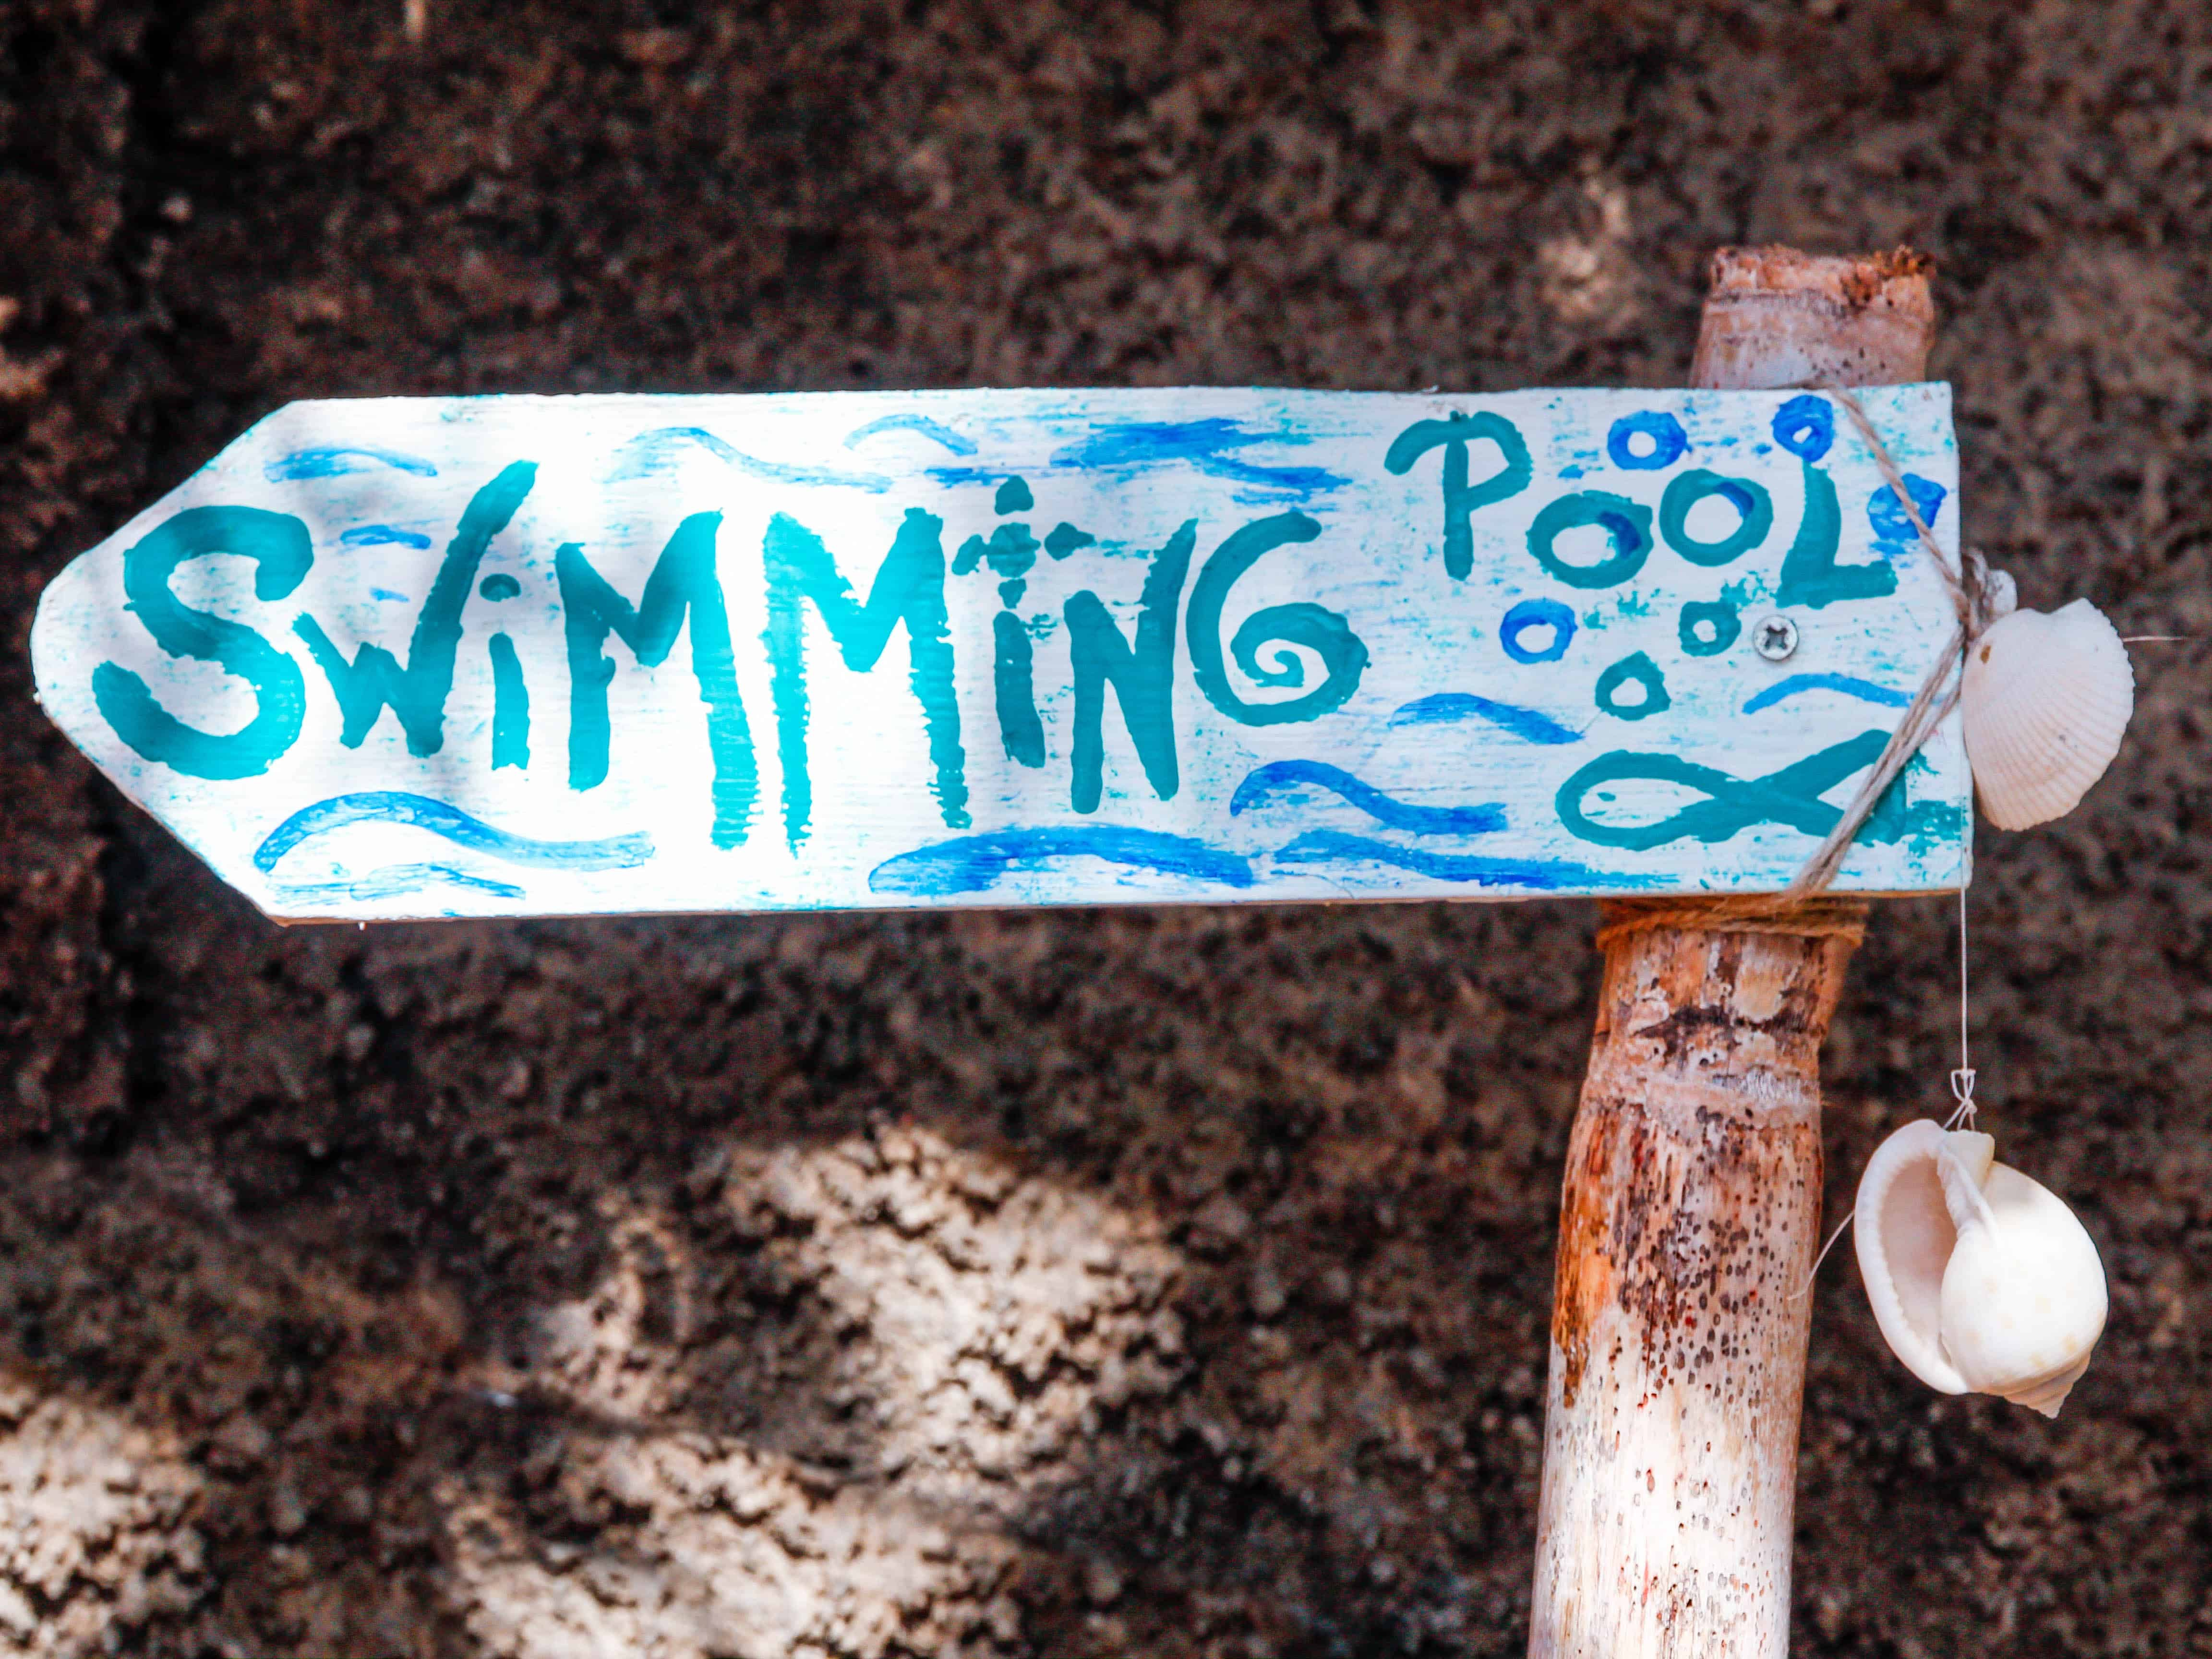 Creative swimming pool sign in La Palma, Canary Islands. Paradise home in La Palma, article by Kiss My Backpack at https://www.kissmybackpack.com/